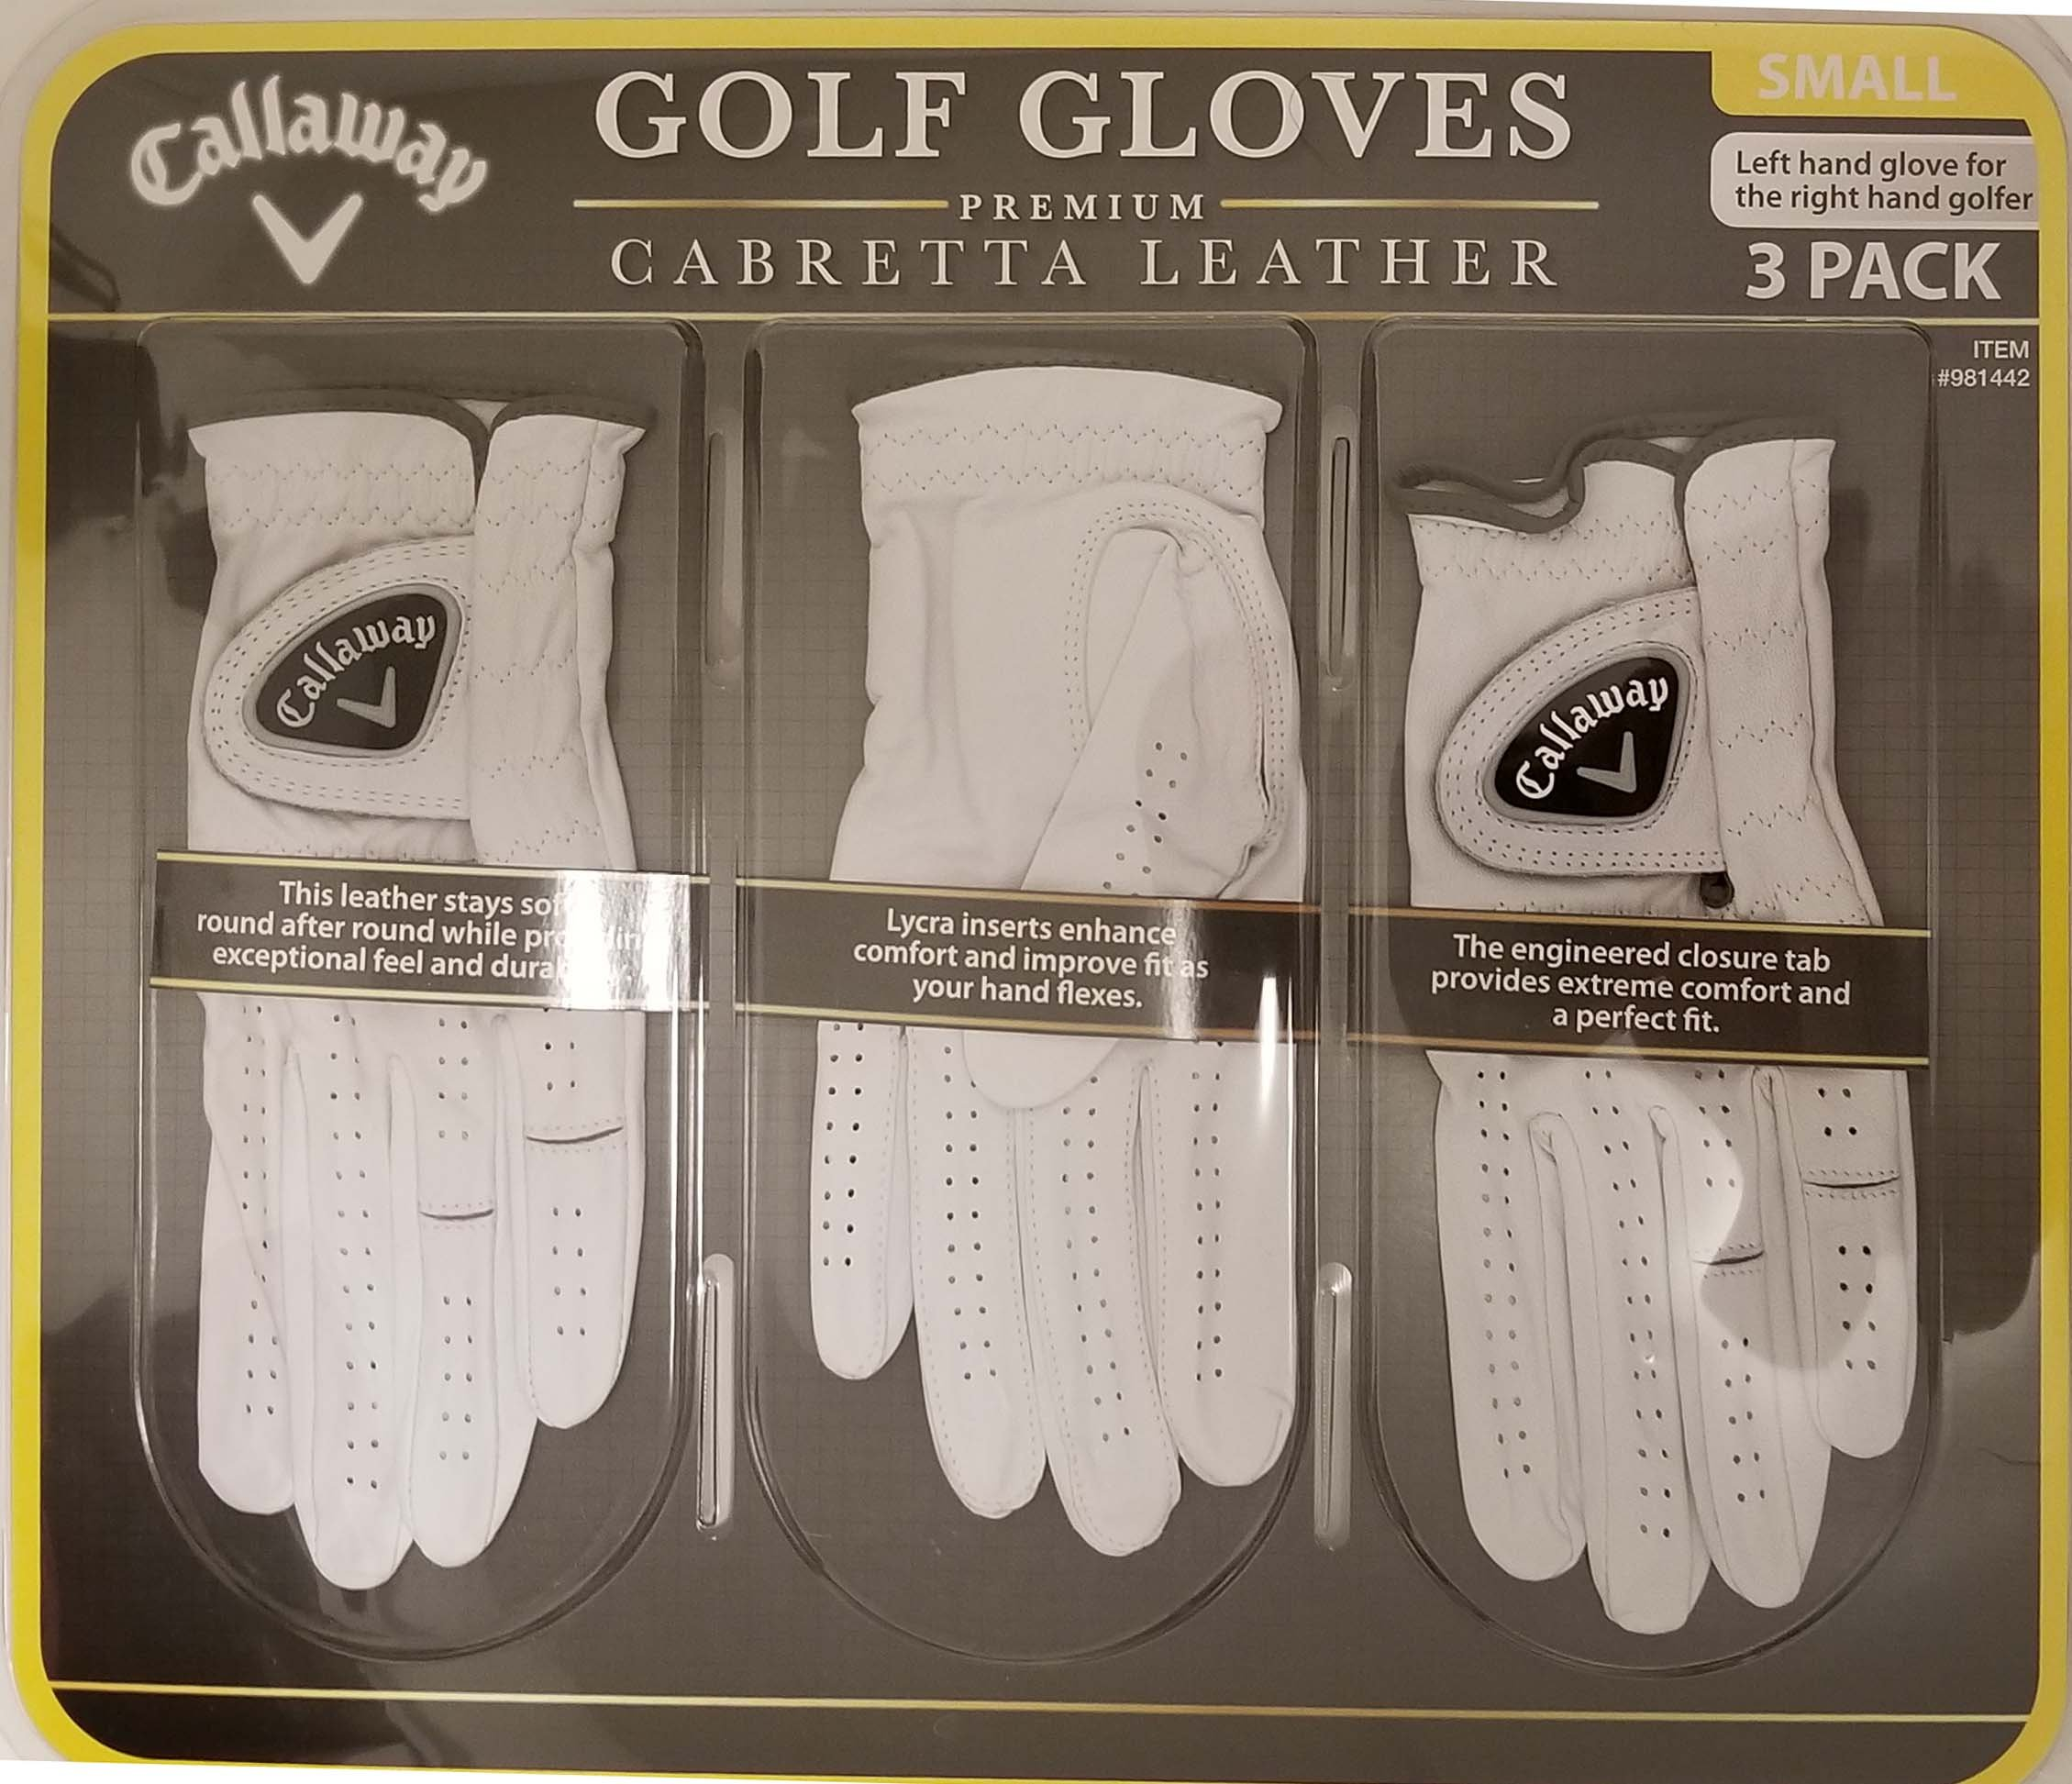 Callaway Golf Gloves 3 Pack Small Left Hand for Right Handed Golfer by Callaway